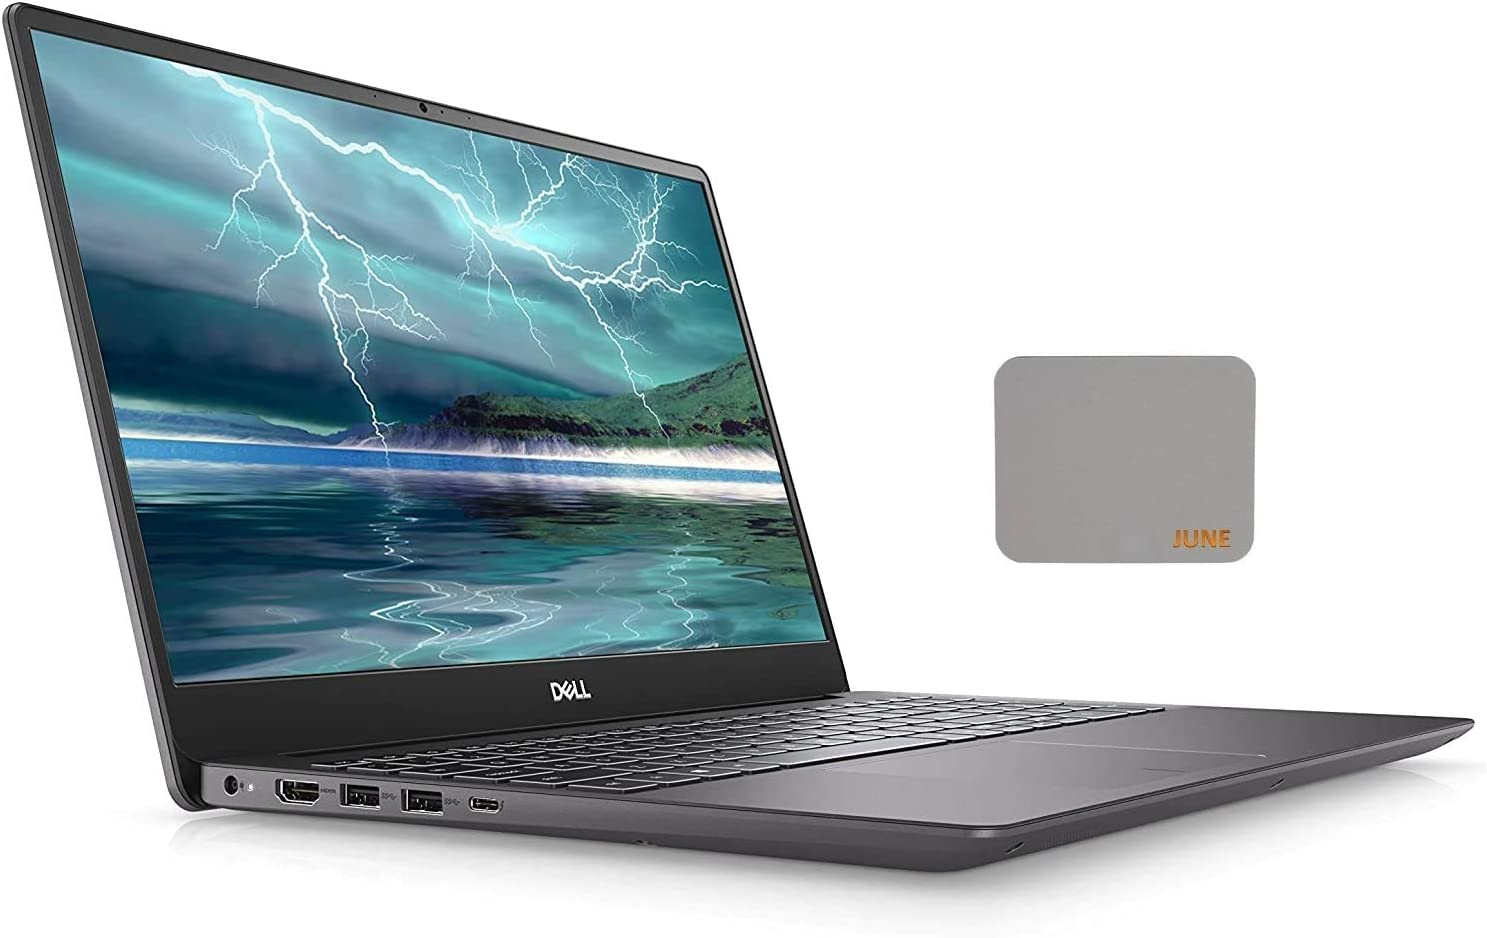 2020 Newest Dell Inspiron Flagship 15 7000 Premium Work&Gaming Laptop: 15.6